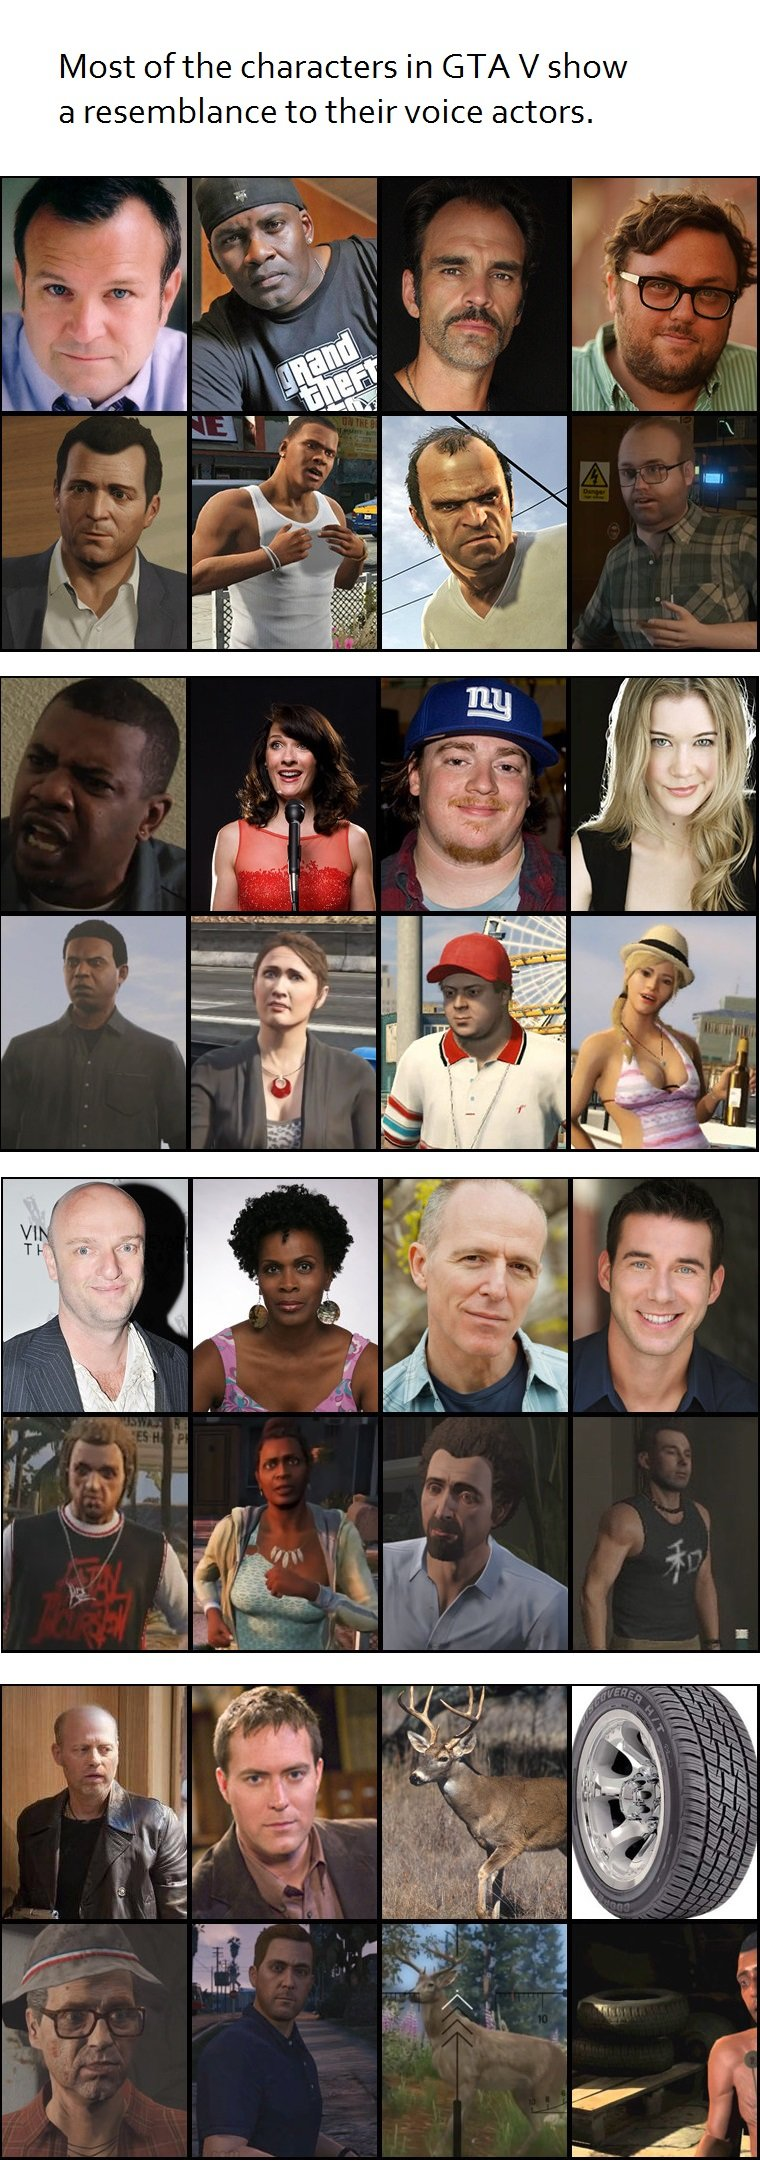 GTA V voice actors. . Most !l' drillbird. characters in (ETA m at resemblance to their voice actors.. Of course they look like the actors, they did face and motion capture like Avatar